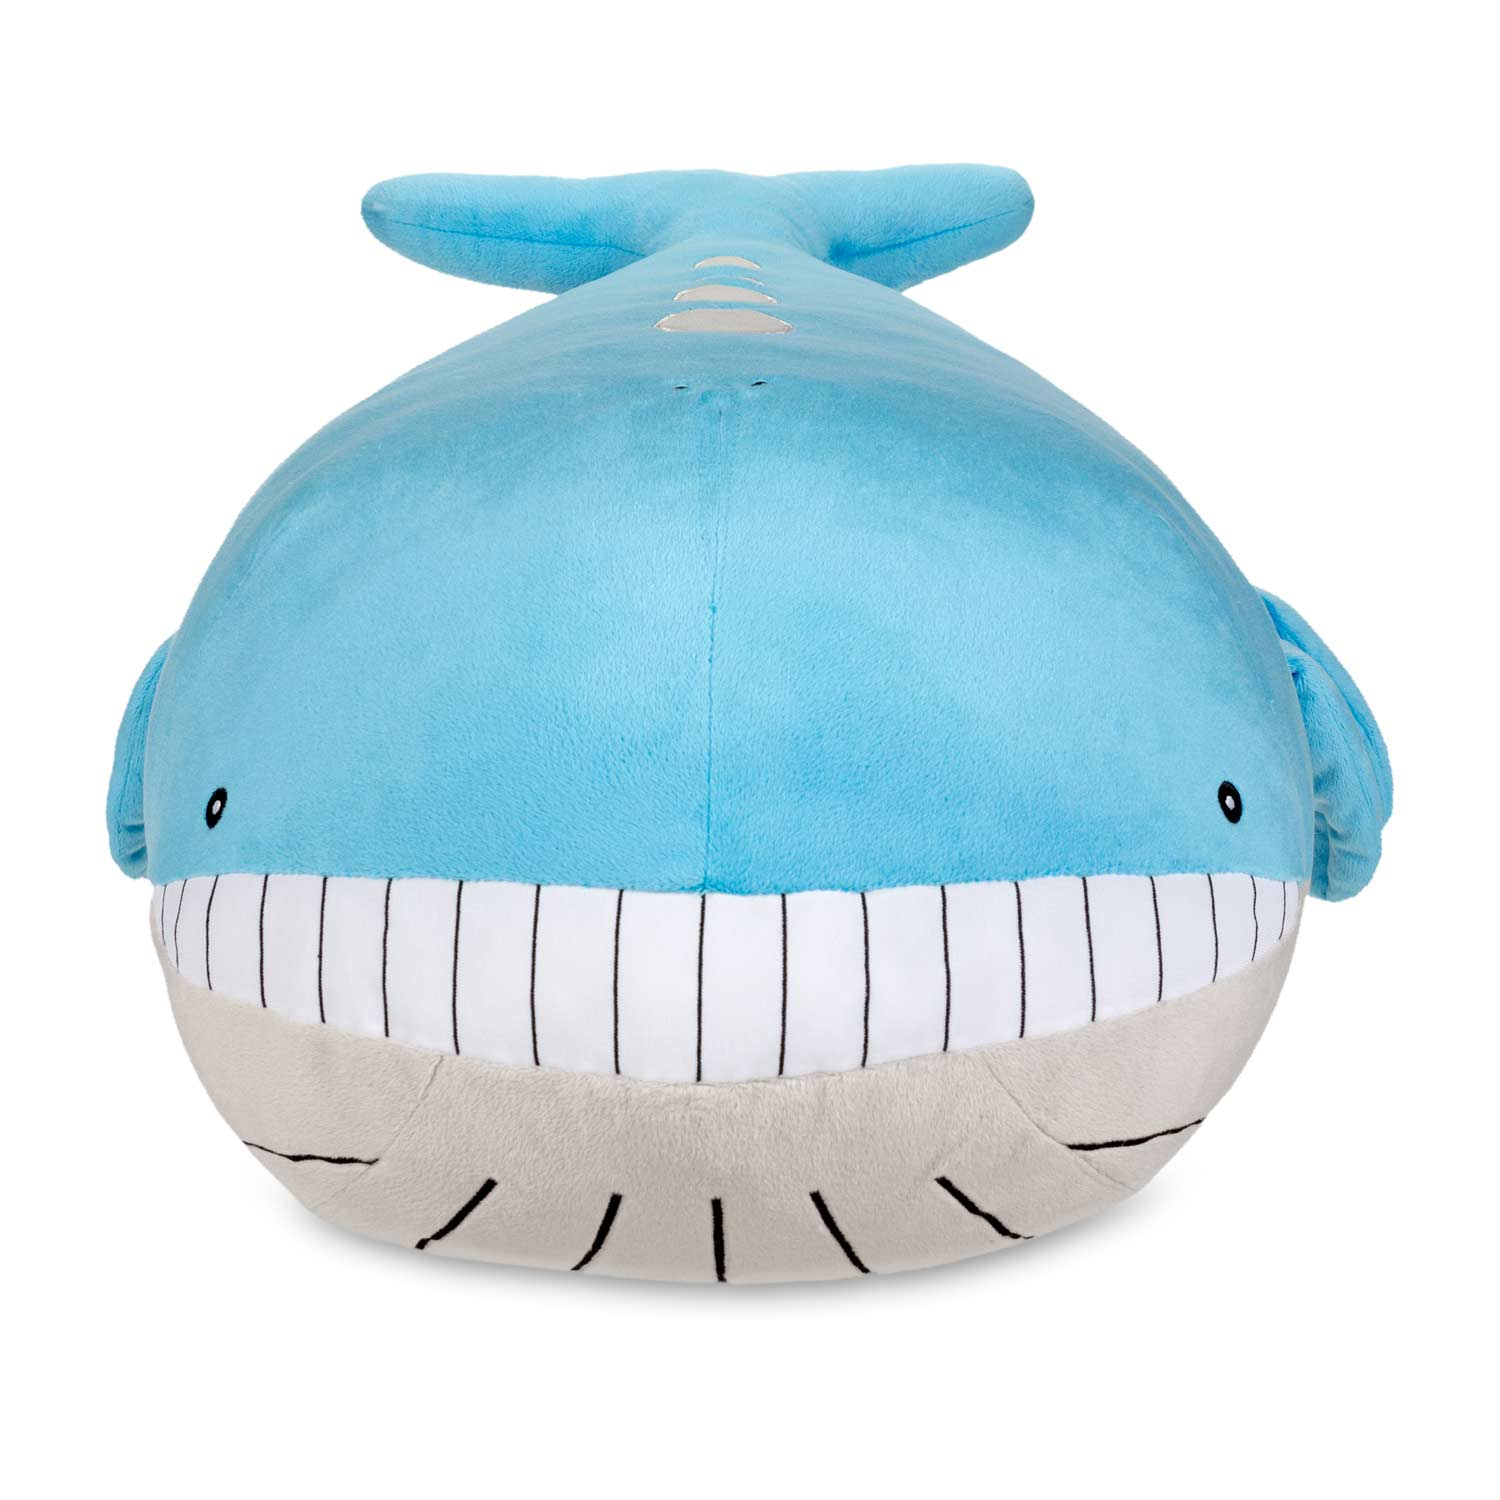 Wailord Poké Plush | plush toy | Poké Plush | plush toy ... Wailmer Pokemon